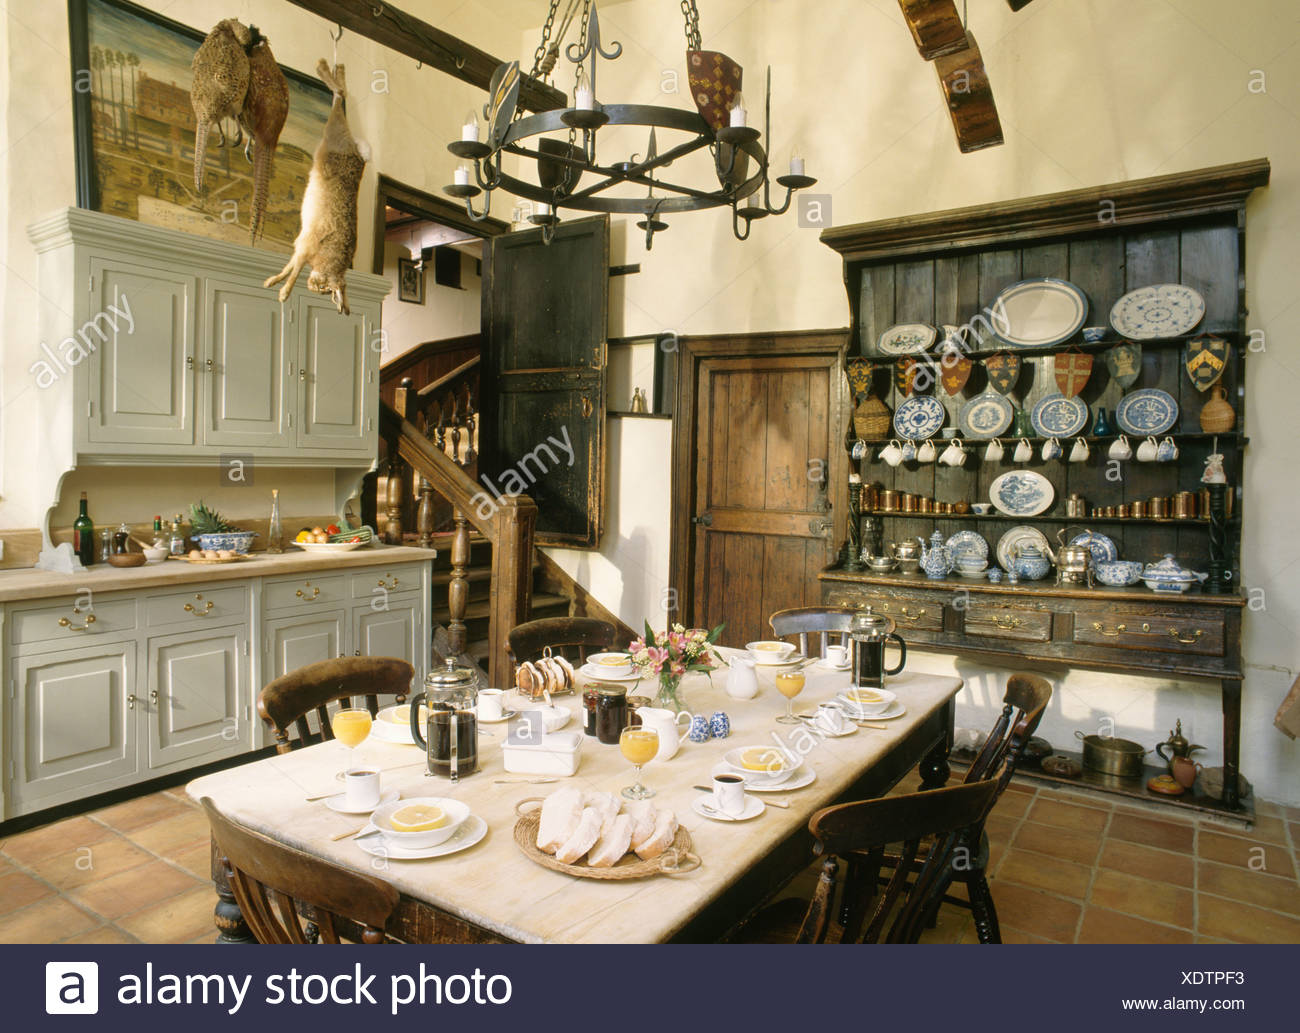 Table set for breakfast in large old fashioned kitchen Stock ...